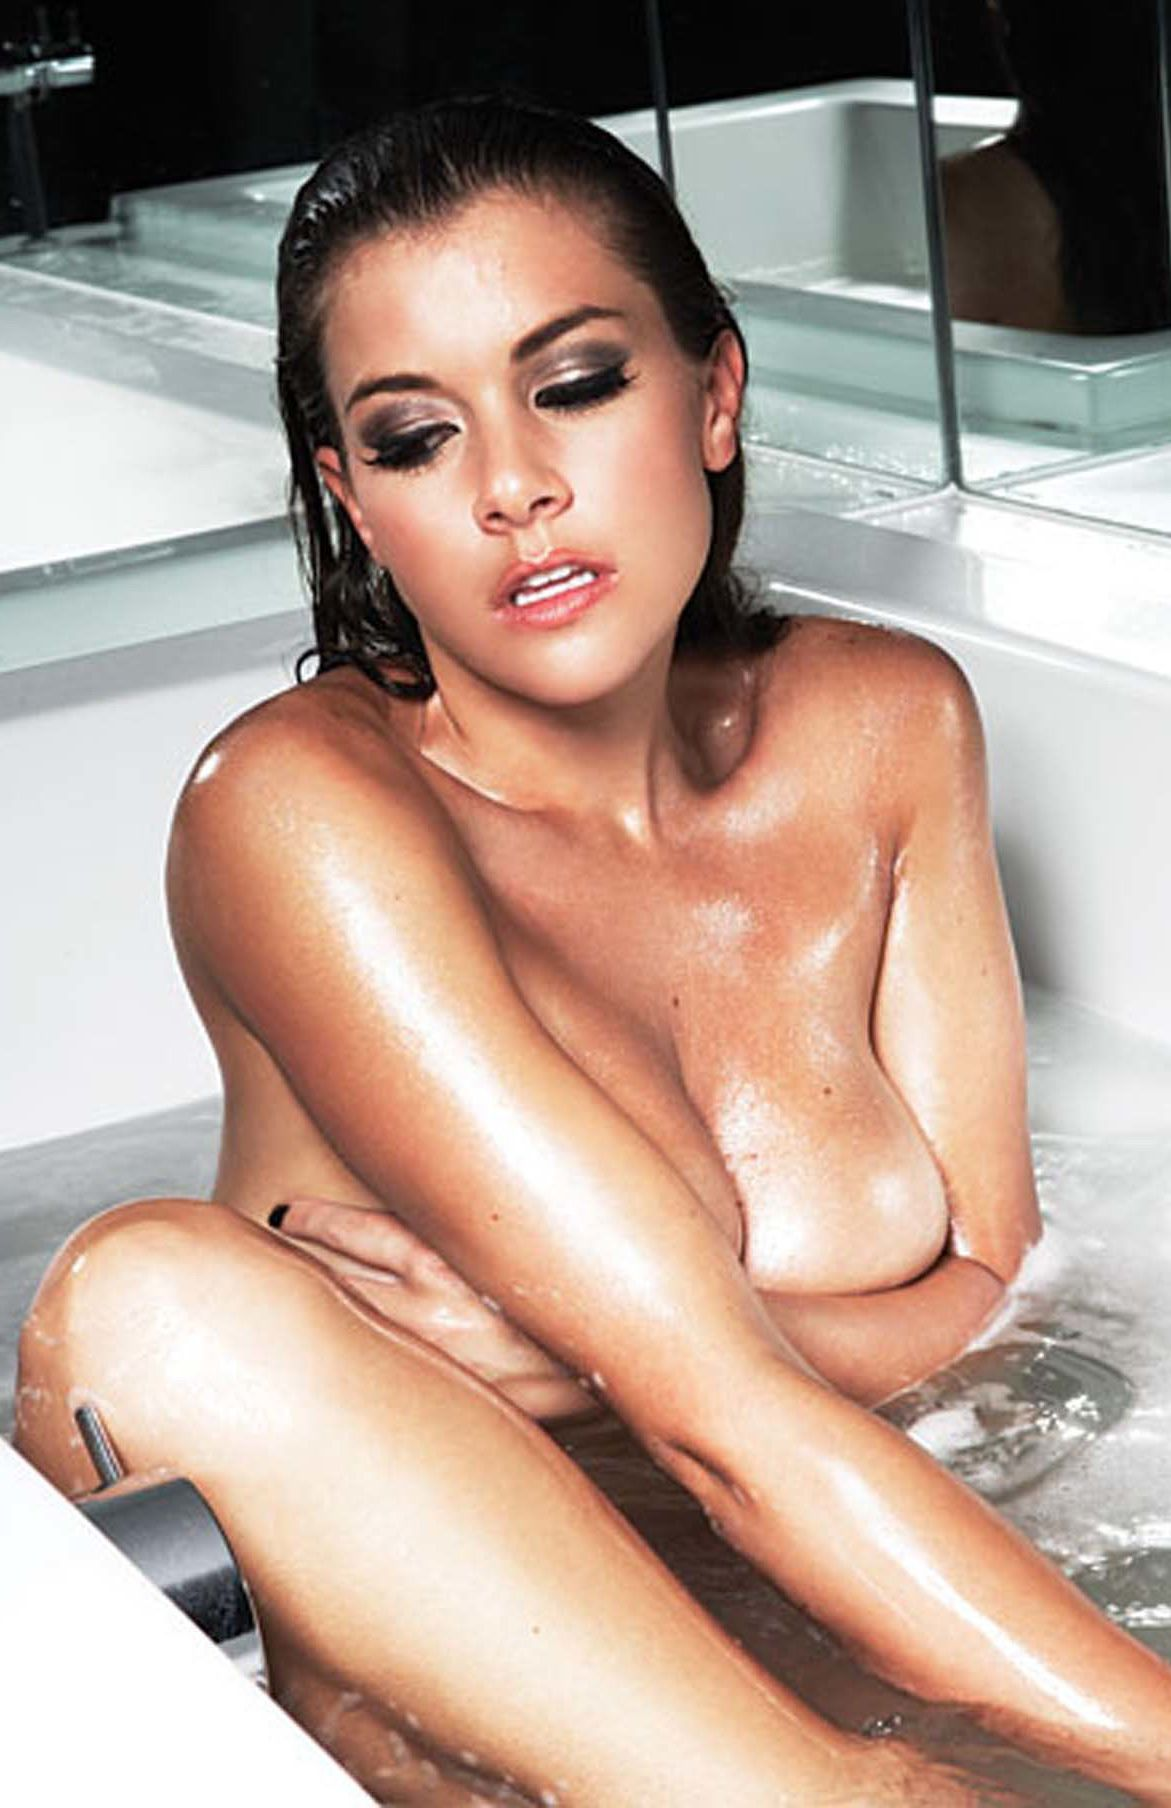 Imogen Thomas Nude Pictures. Rating = 9.56/10